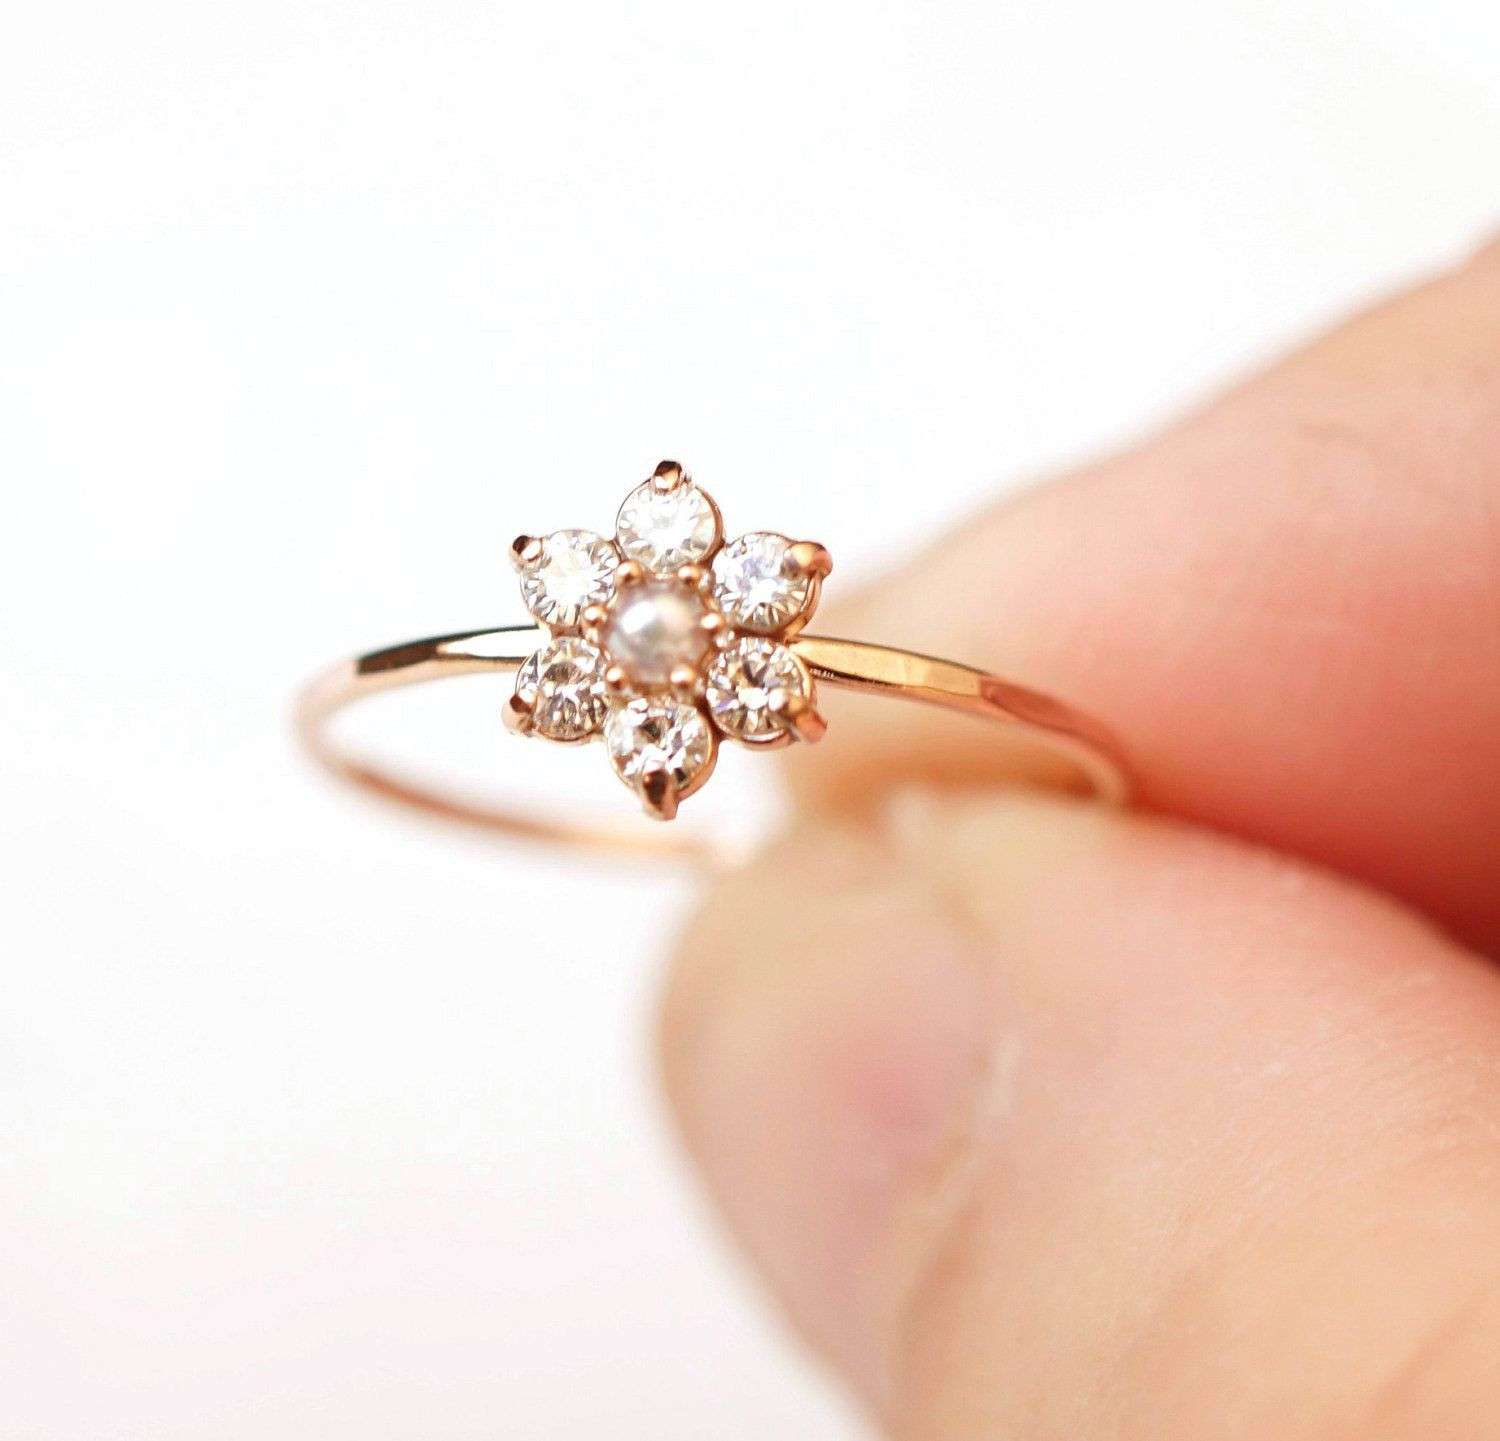 Moissanite Ring, Daisy Ring, Flower Ring, Cluster Ring, 14k Gold Within Most Recent Sparkling Daisy Flower Rings (View 8 of 25)